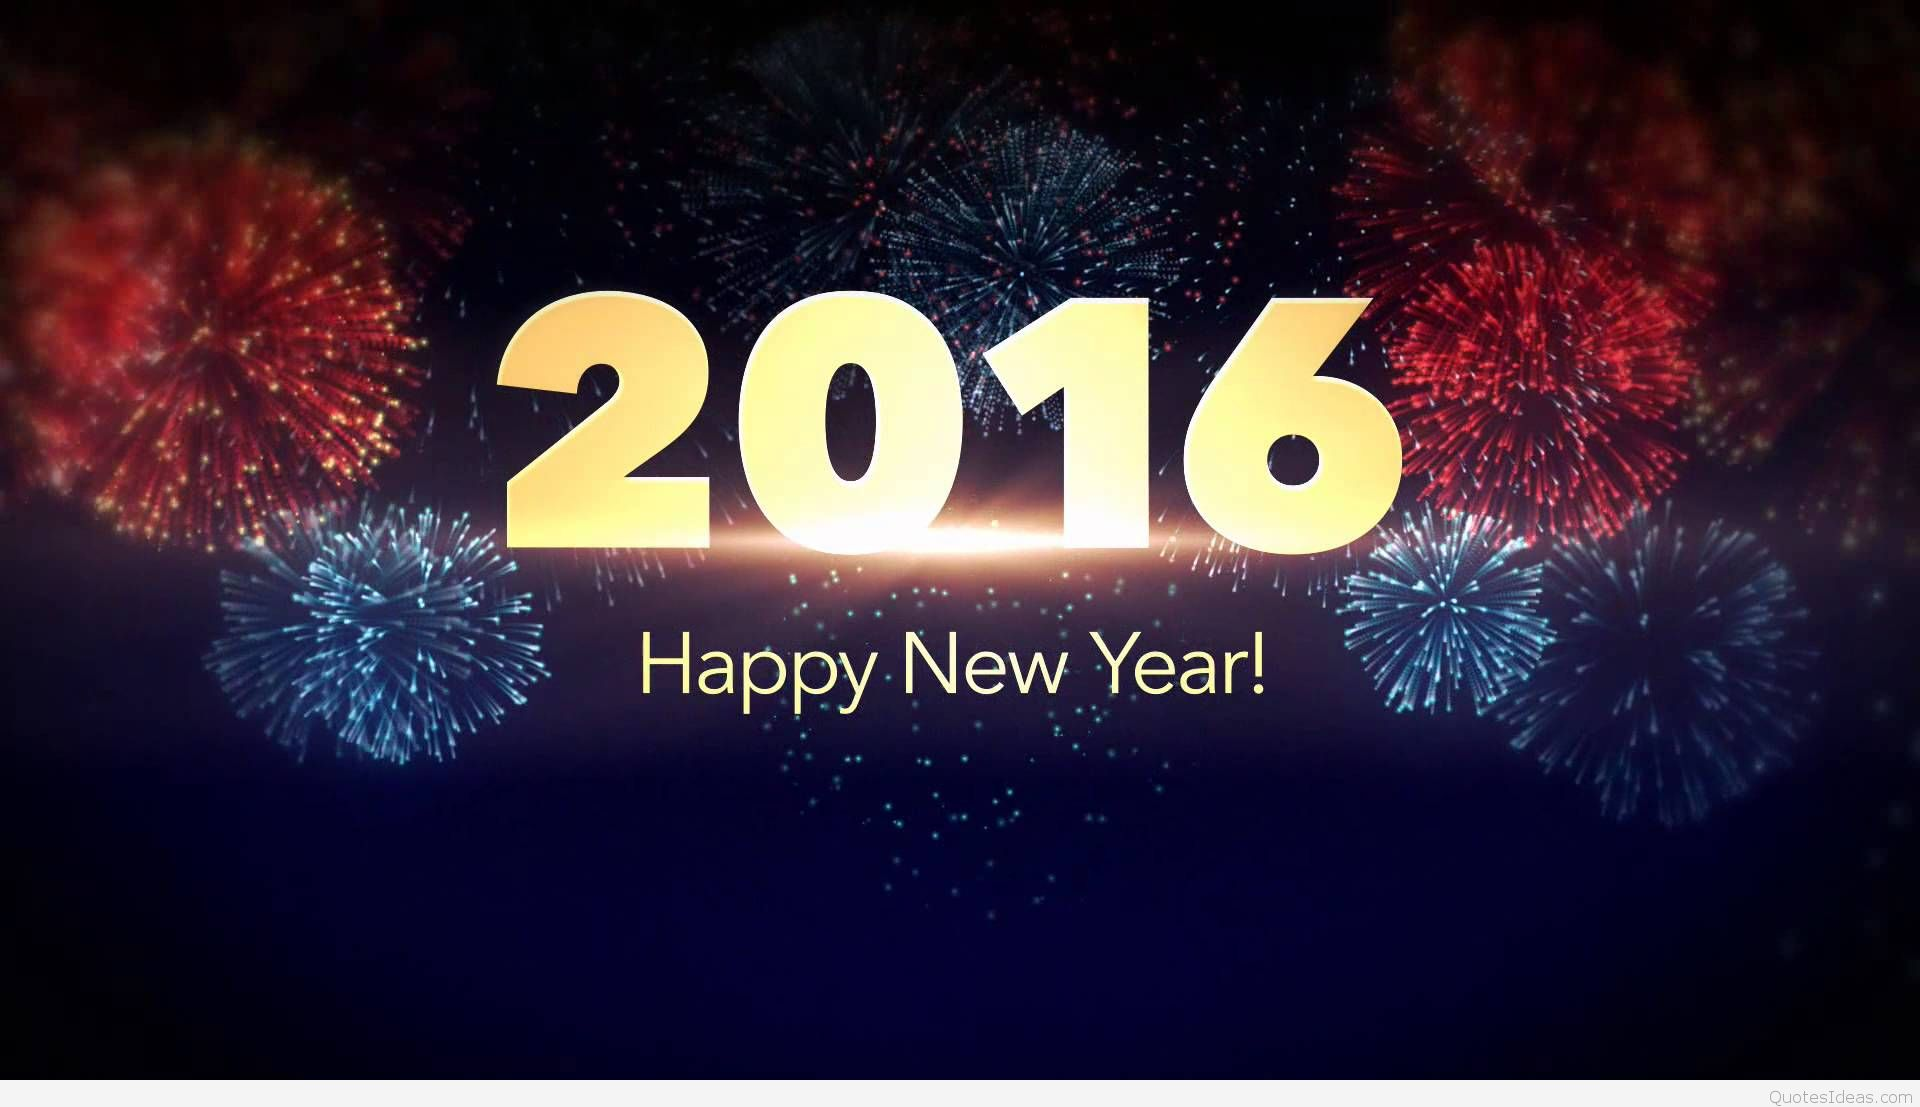 Happy New Year Hd Wallpaper Animated 2016 Kc Sign Awnings Blog